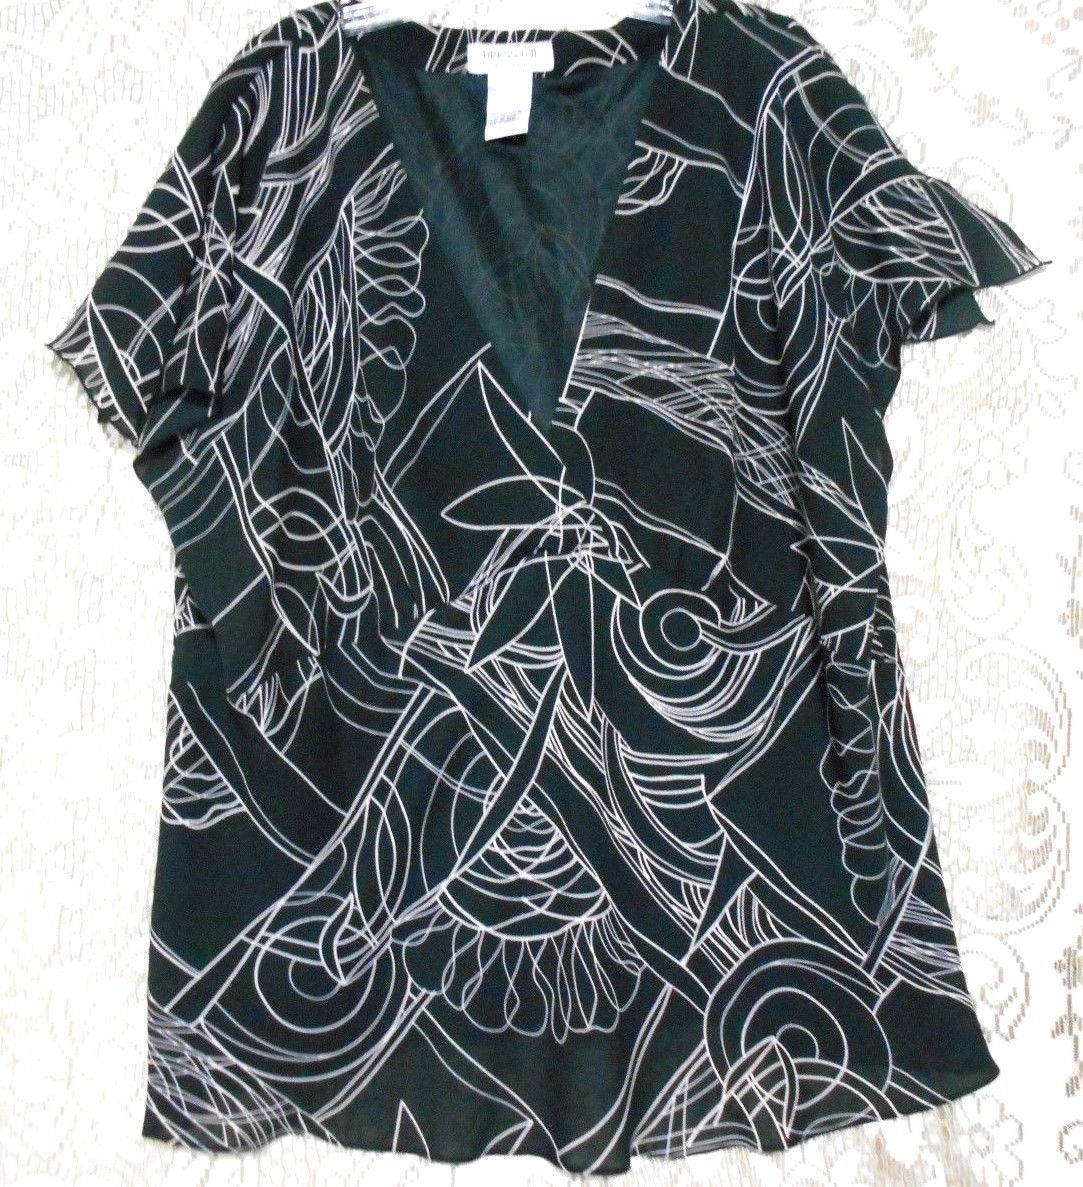 Primary image for Dress-U-11 Black White  Size 3X V Neck  Lined Empire Bodice Blouse Short Sleeves